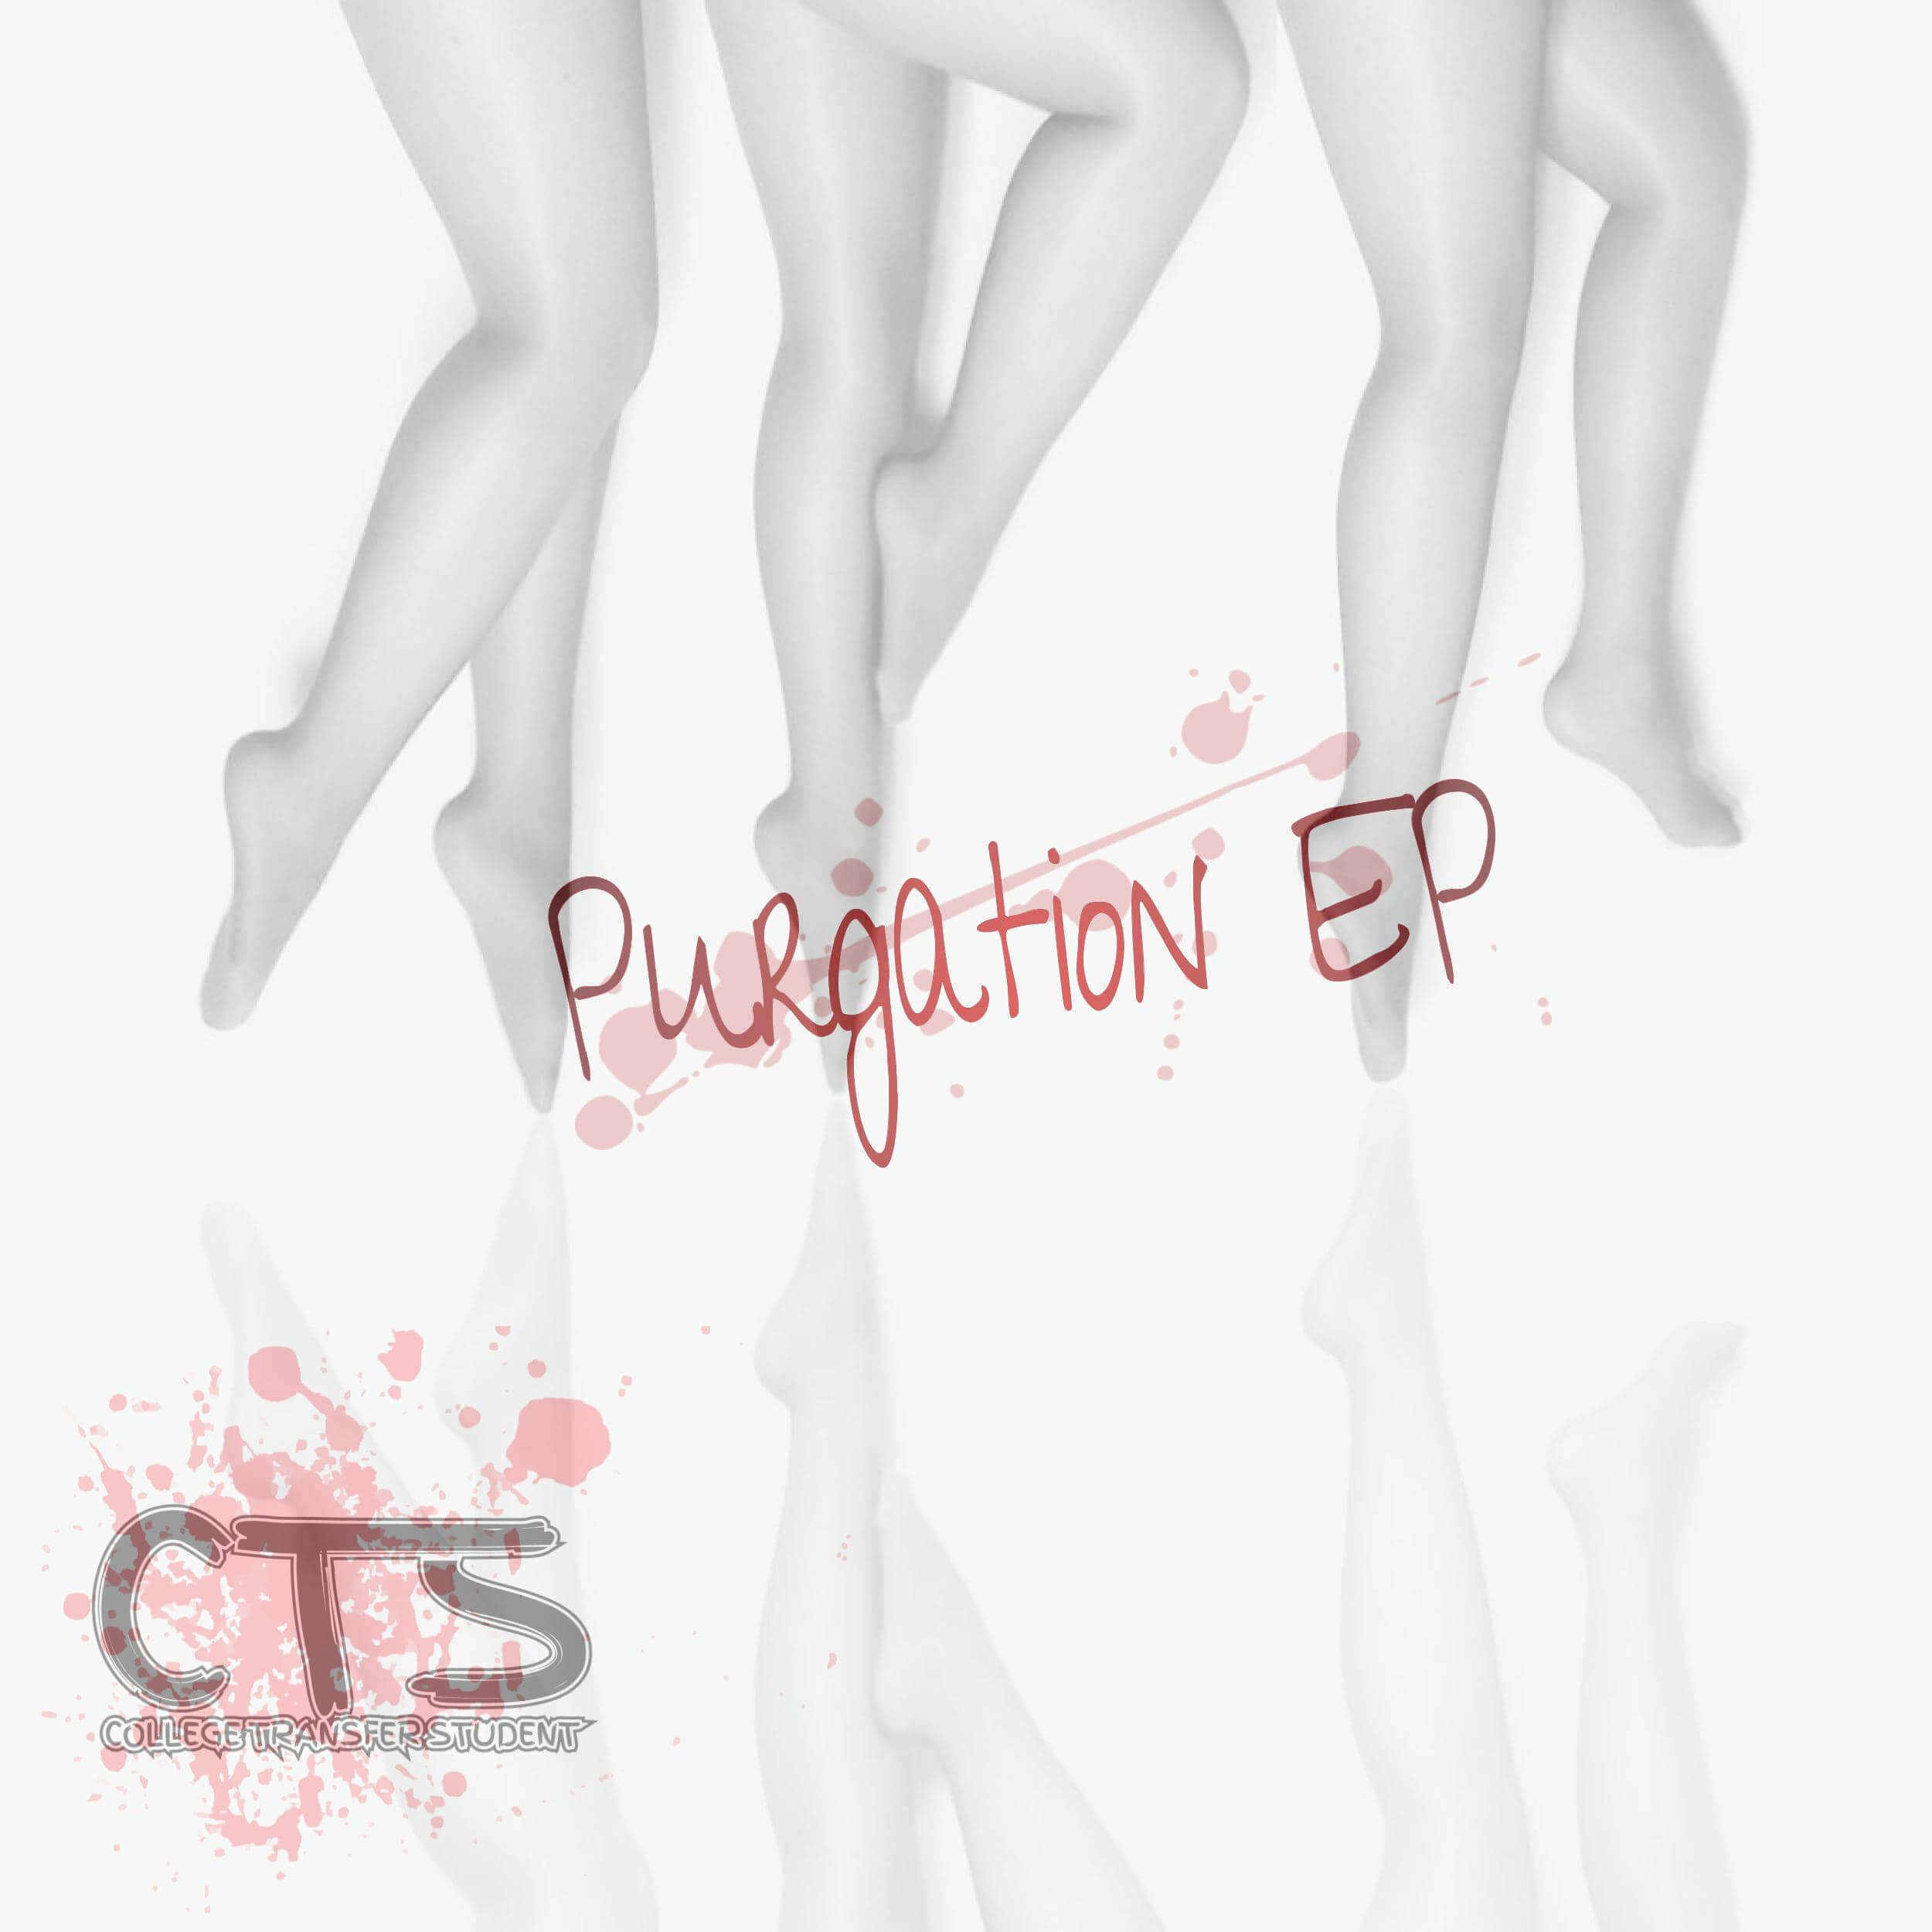 Purgation EP - Front Cover - Album Artwork